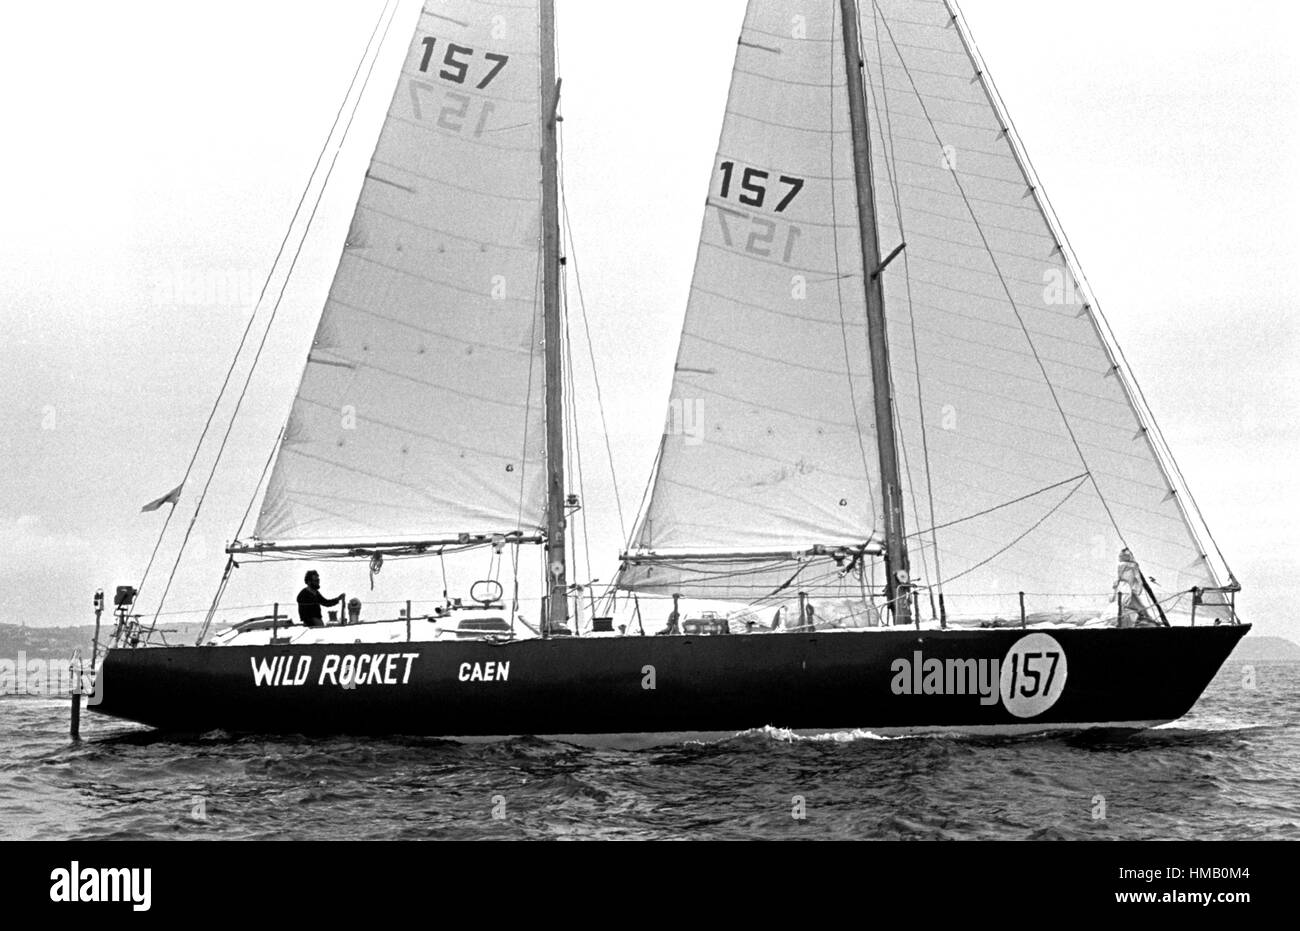 AJAXNETPHOTO. 6TH JUNE, 1976. PLYMOUTH, ENGLAND. - OSTAR 1976 - 63FT MONOHULL WILD ROCKET SKIPPERED BY FRENCHMAN Stock Photo